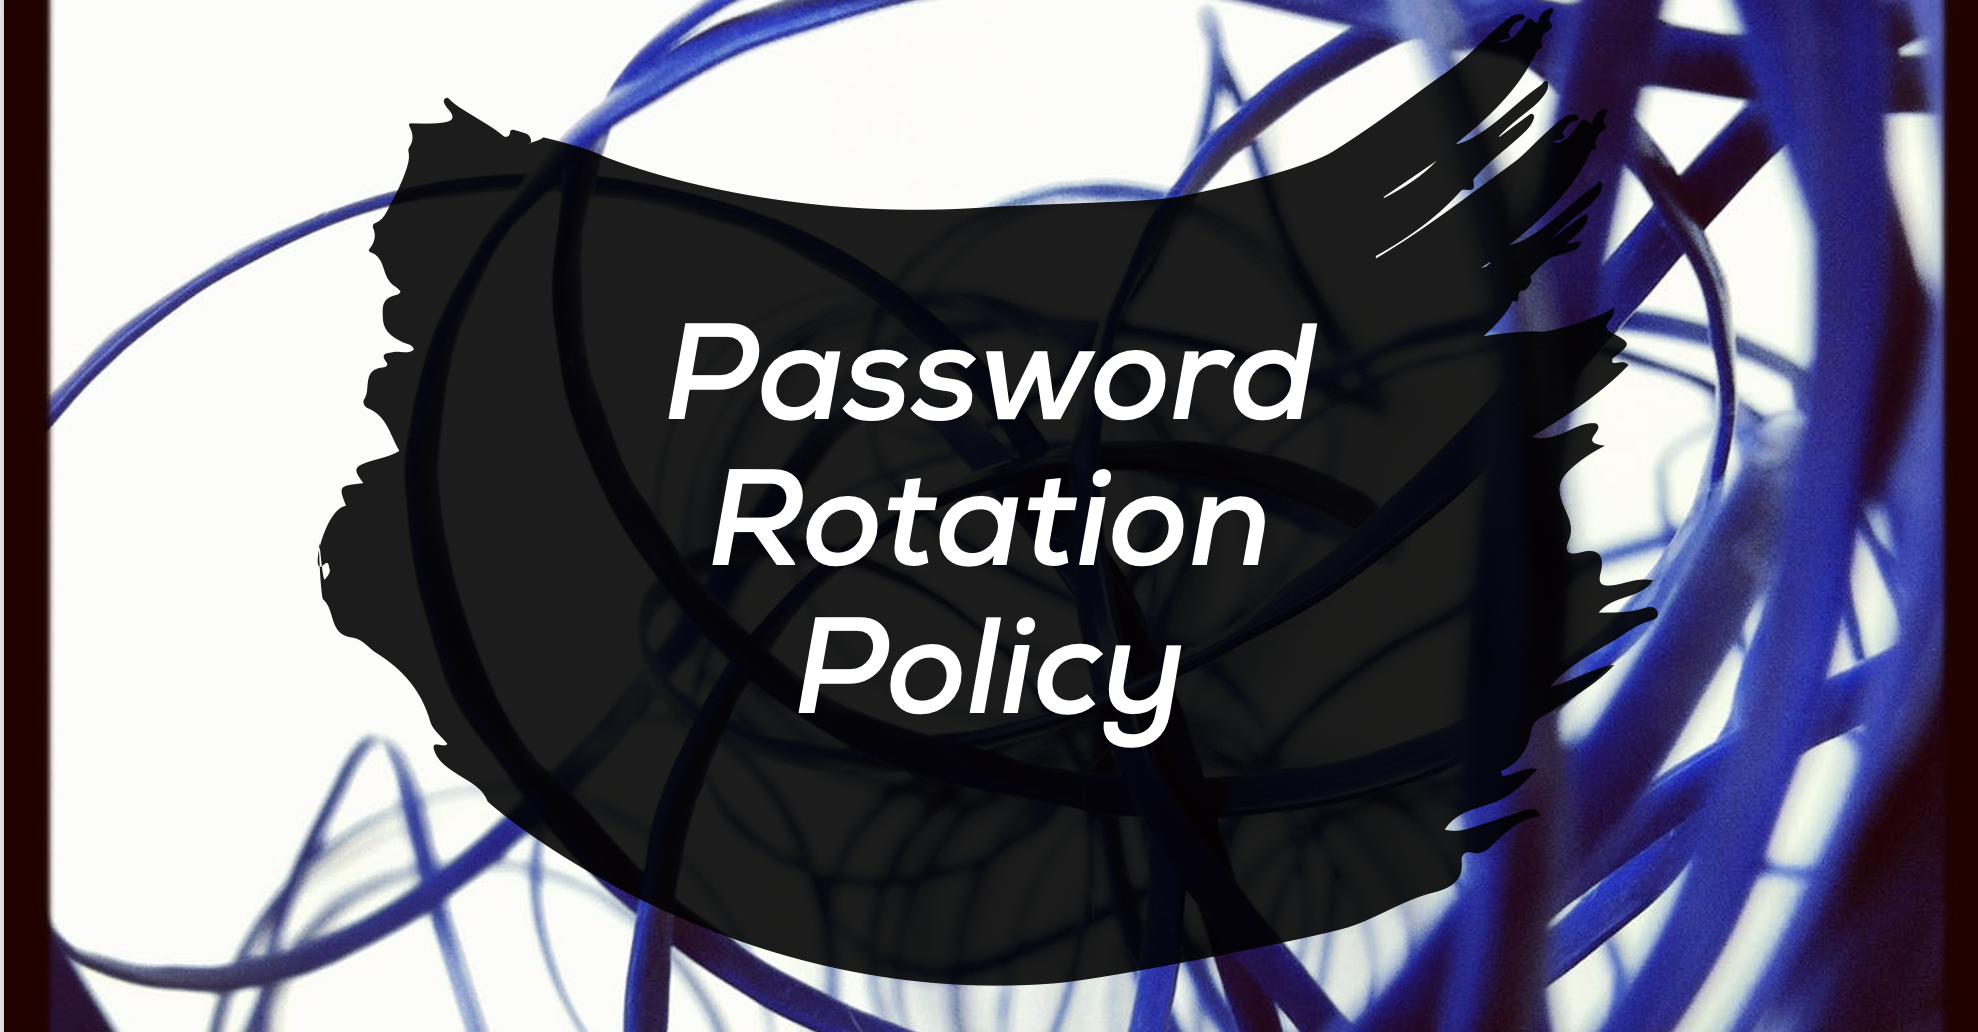 Password Rotation Policy